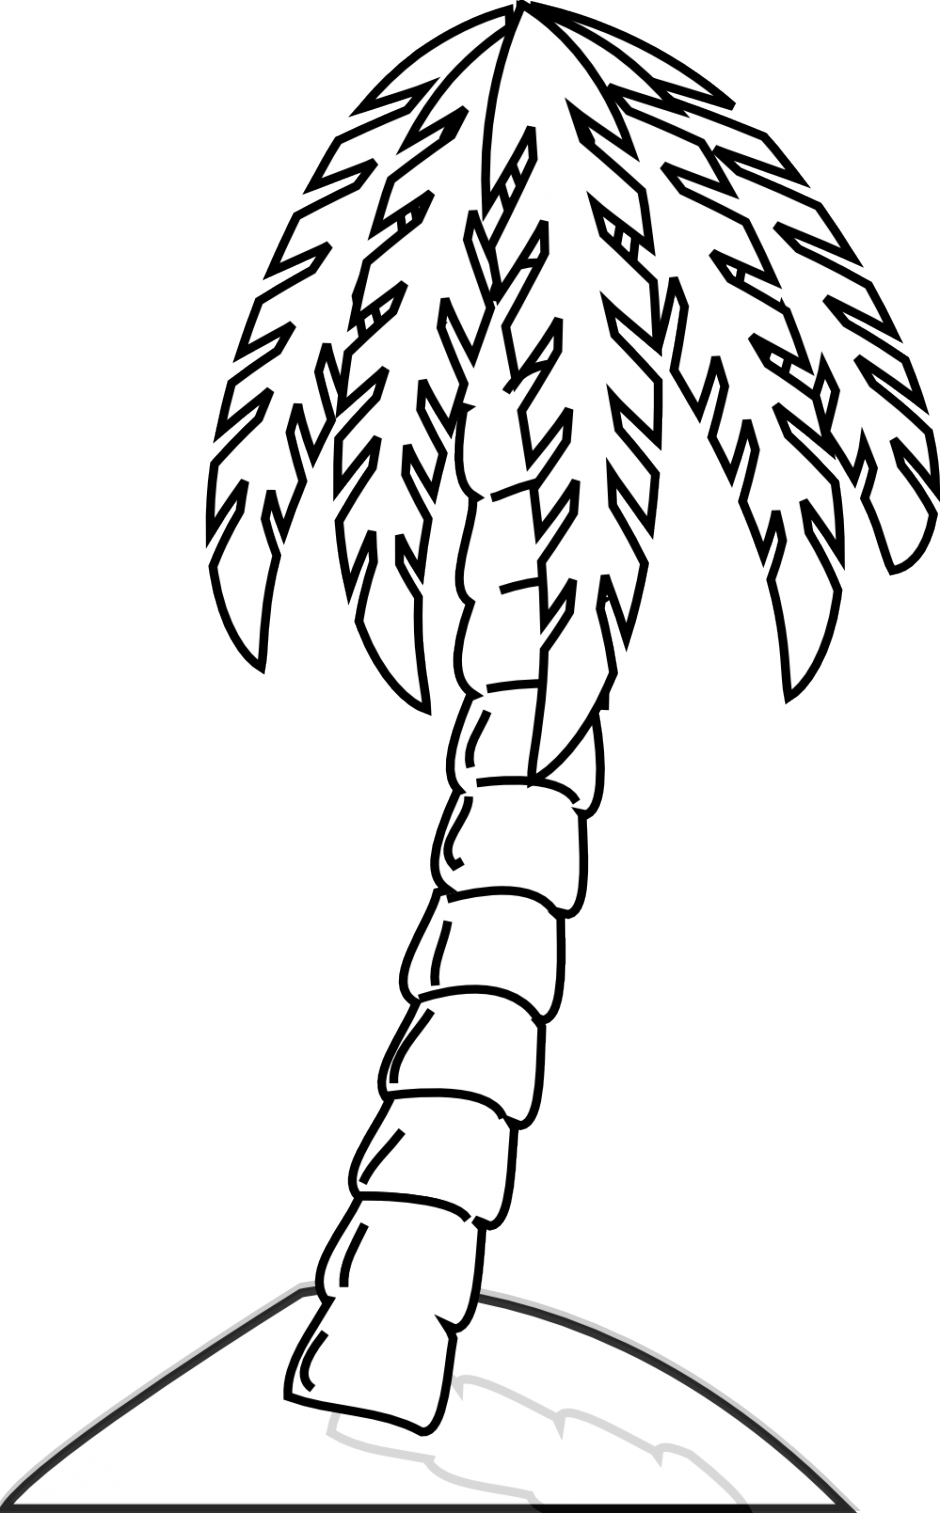 Palm Tree Leaves Coloring Pages  Coloring Pages For Kids and All Ages